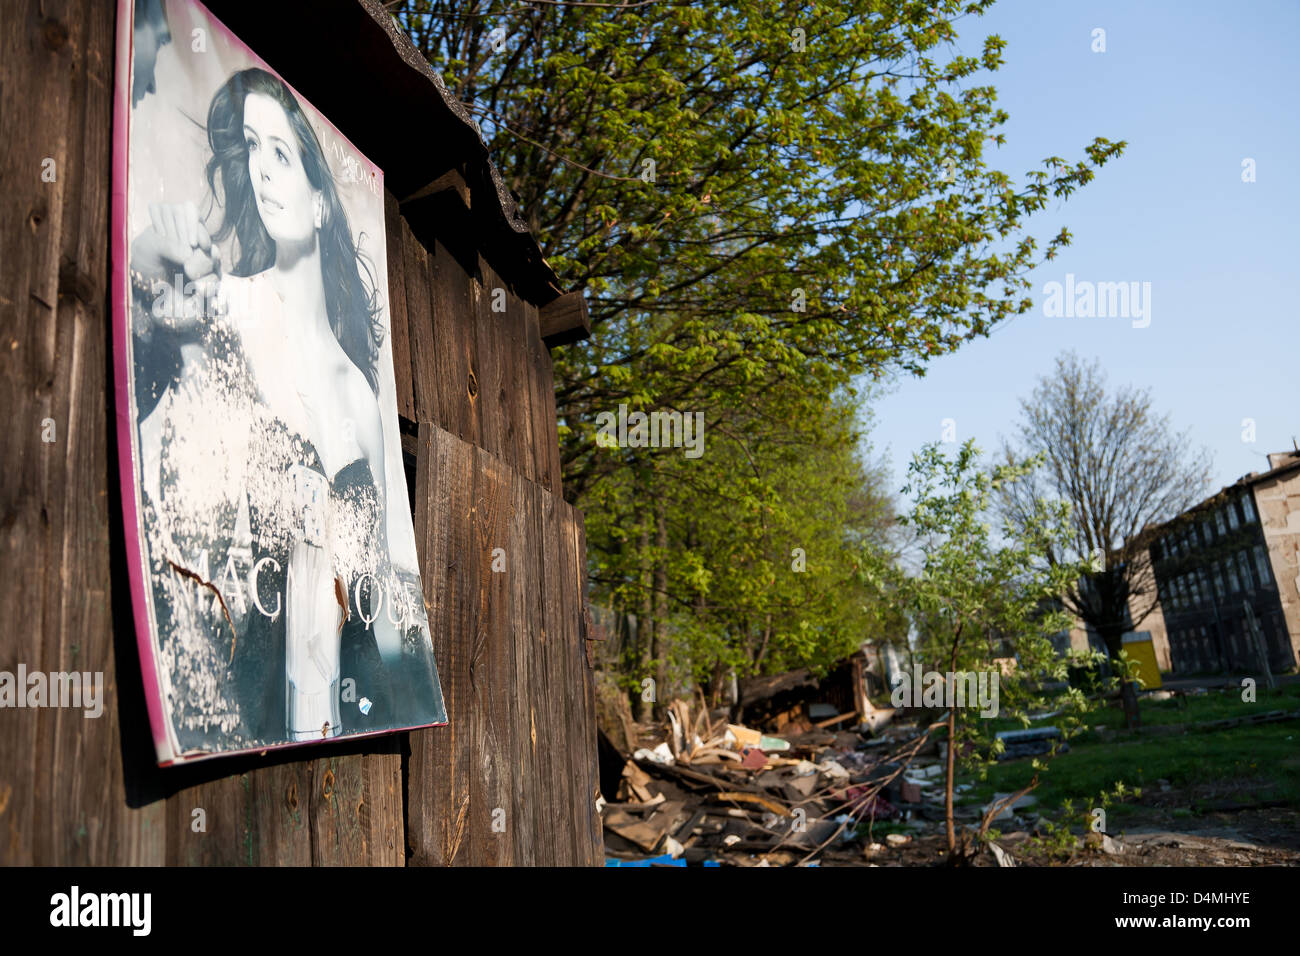 Gdansk, Poland, faded perfume advertisement on the grounds of a dilapidated housing estate - Stock Image